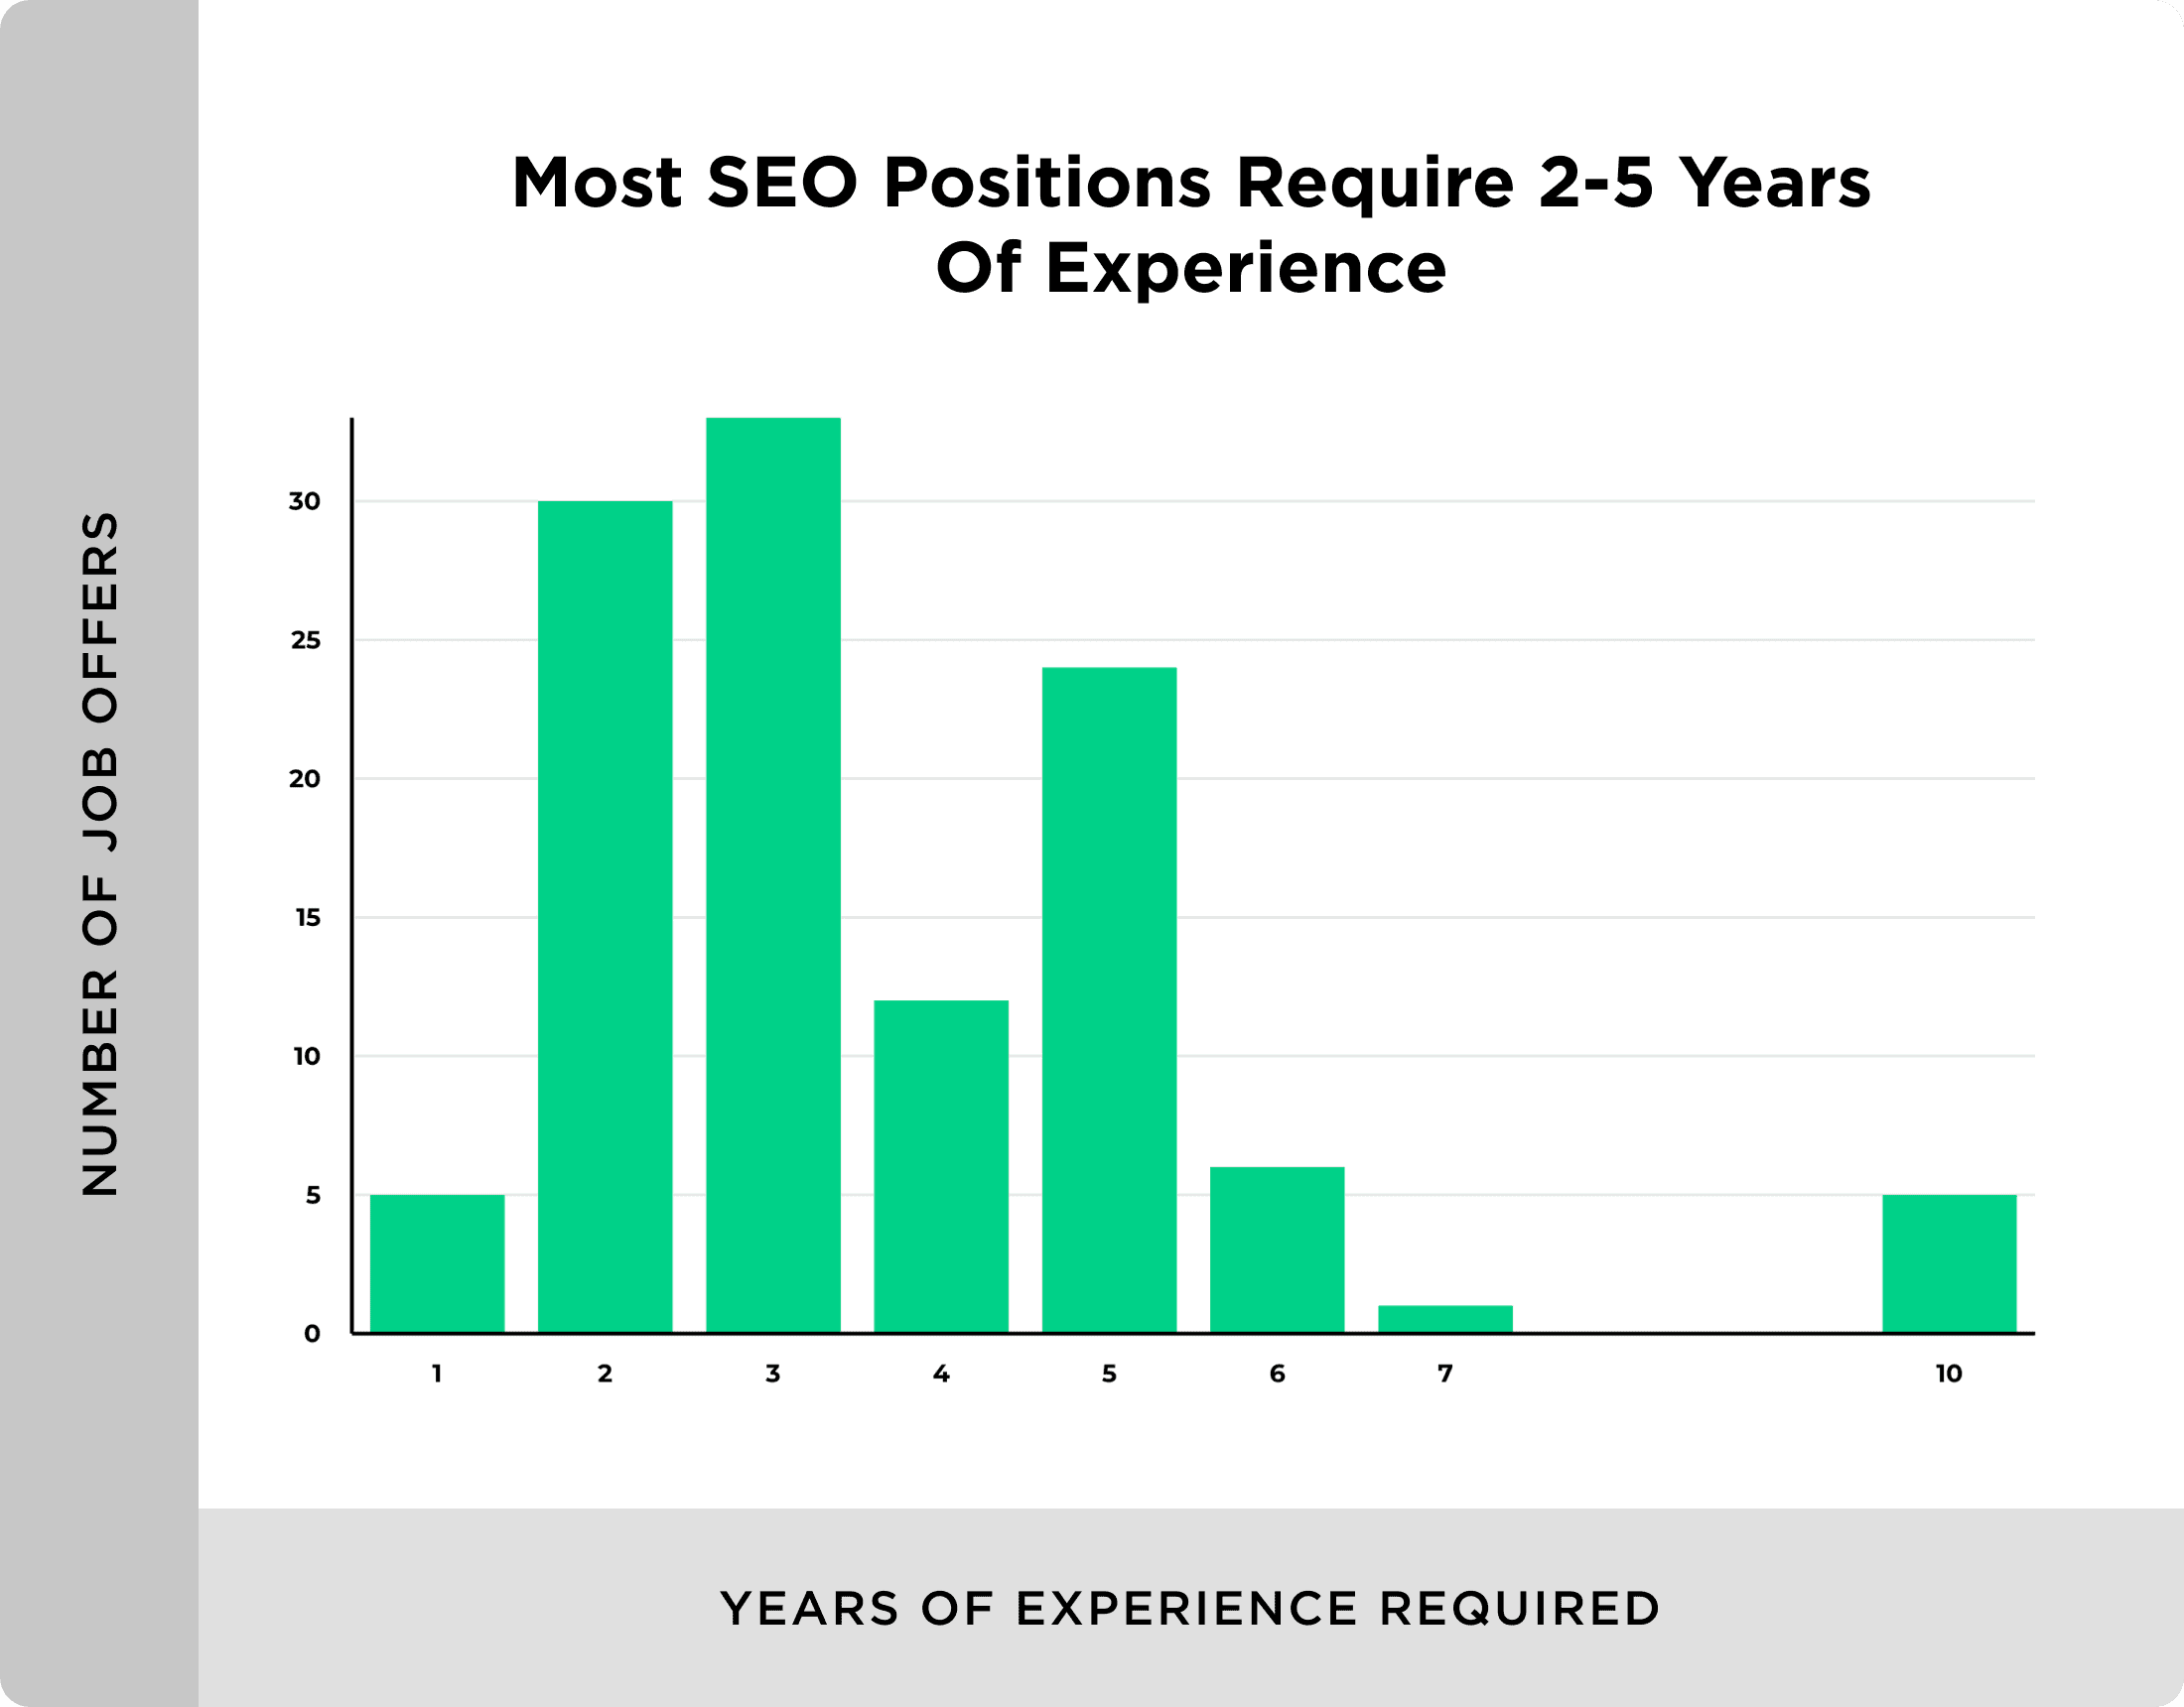 Years of experience required for SEO position